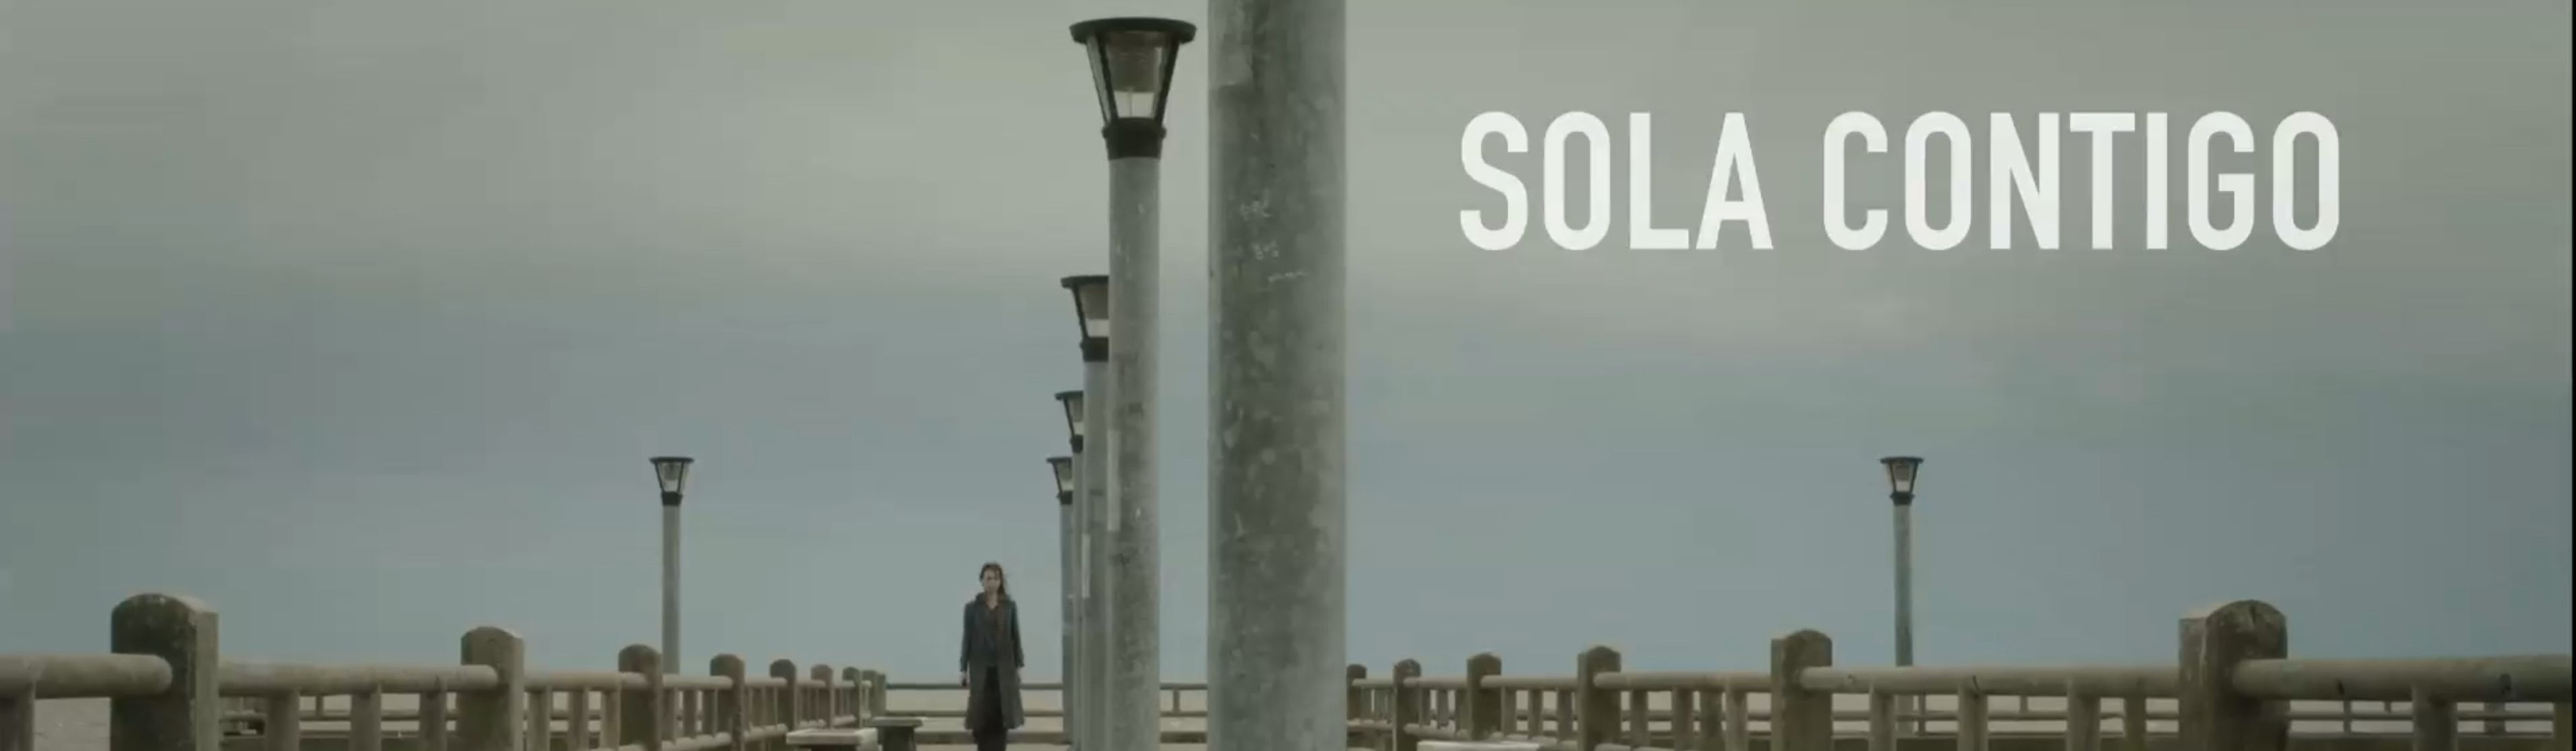 ALONE WITH YOURSELF / SOLA CONTIGO